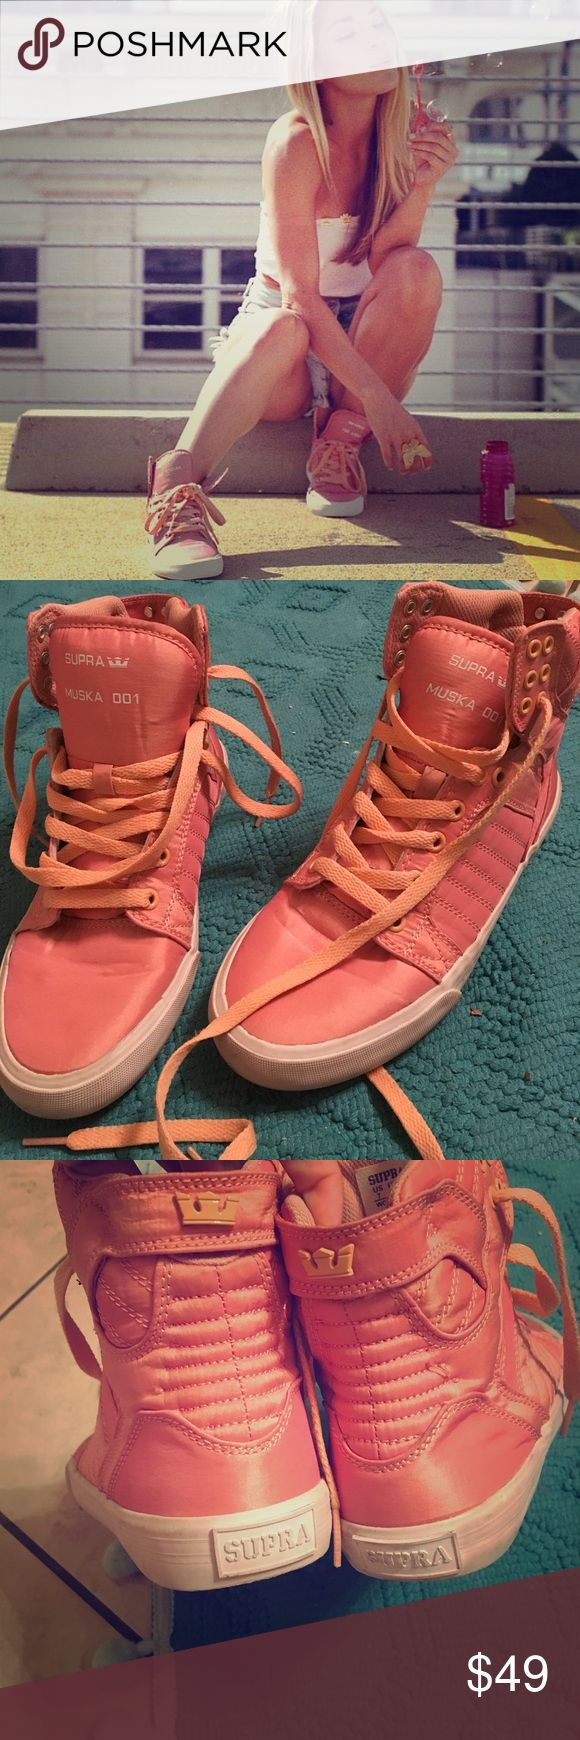 Dusty pink Supra Muska 001 EUC Sz 7 Barely worn, very minimal wear. Super cute sneakers, in an awesome unique salmon-y pink. Size 7, smoke free home. Supra Shoes Sneakers